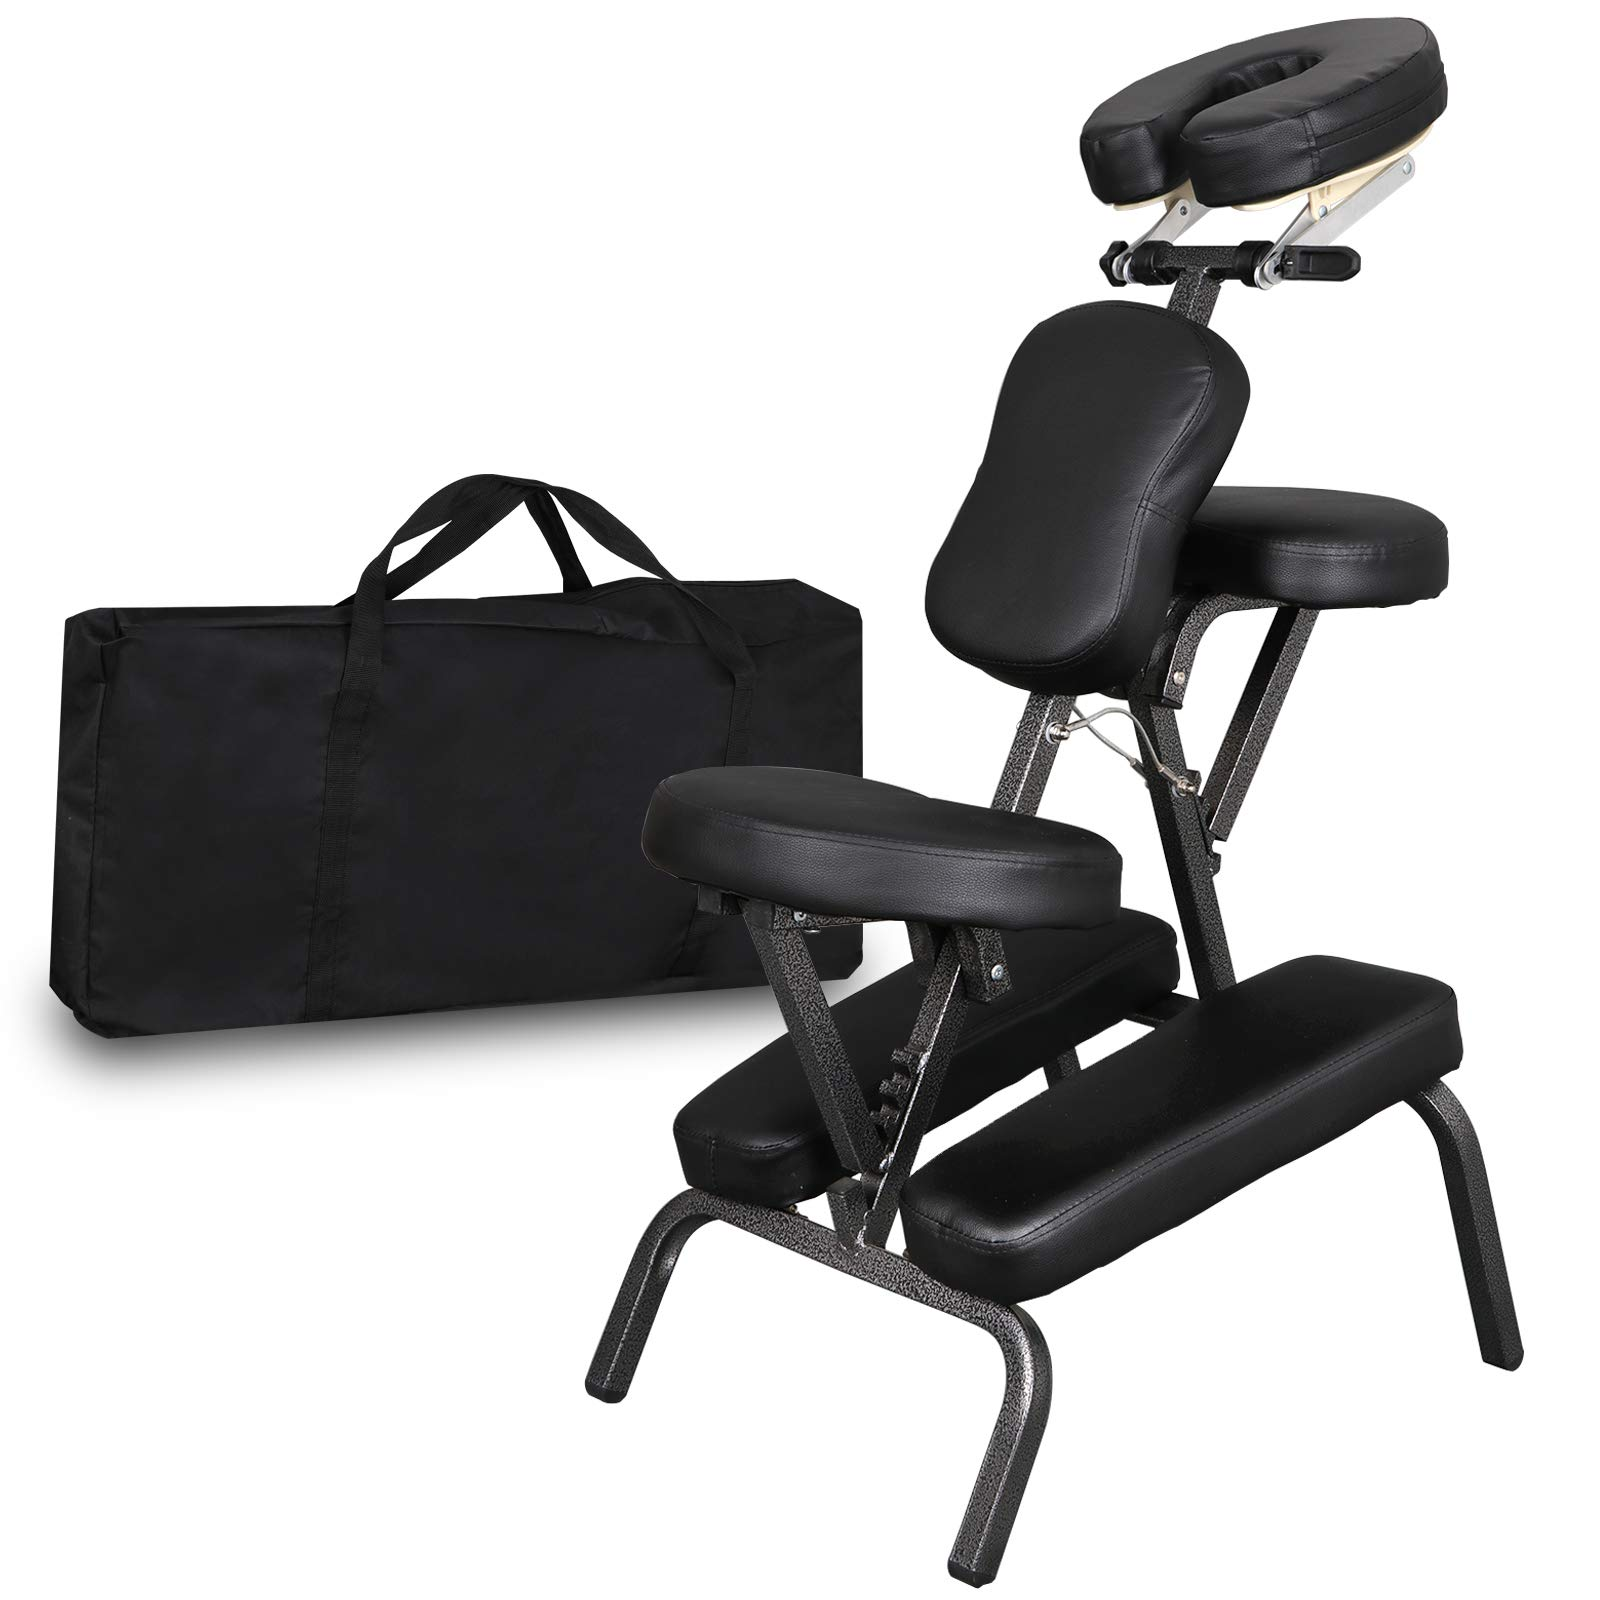 Portable Light Weight Massage Chair Leather Pad Travel Massage Tattoo Spa Chair w/Carrying Bag (#1) (Black) by Nova Microdermabrasion